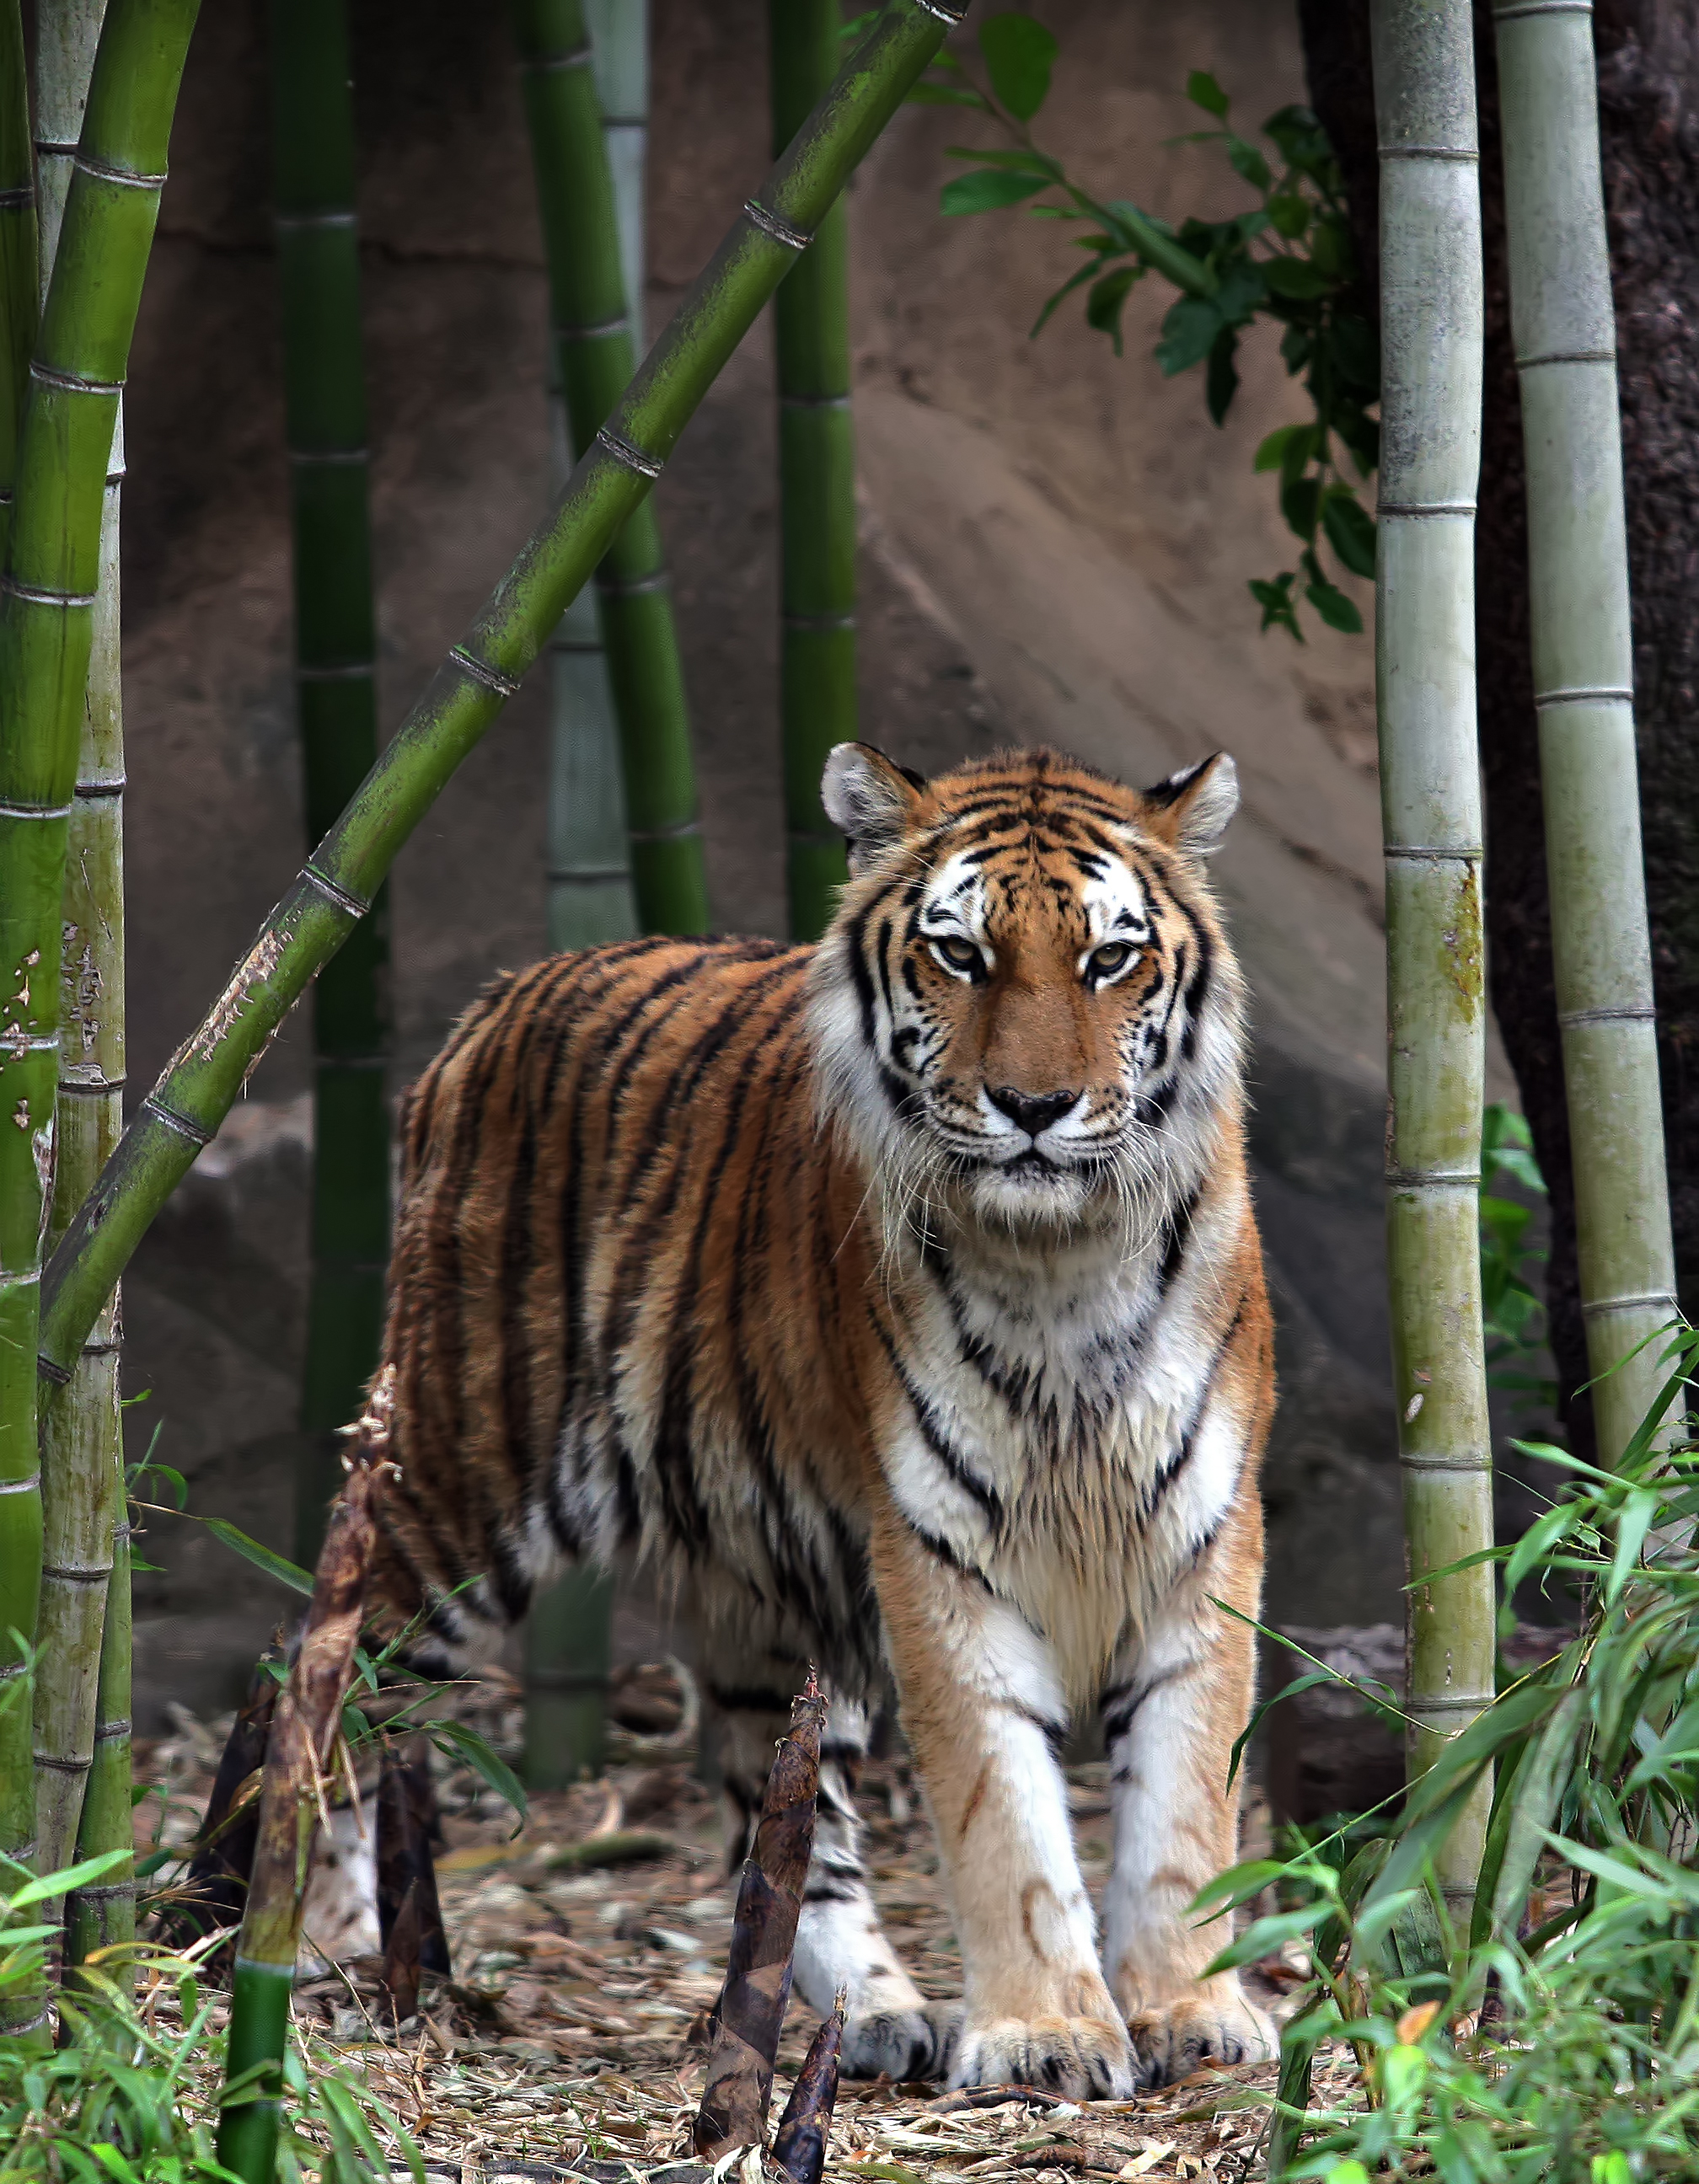 Tiger, Animal, Bamboo, Big, Cat, HQ Photo